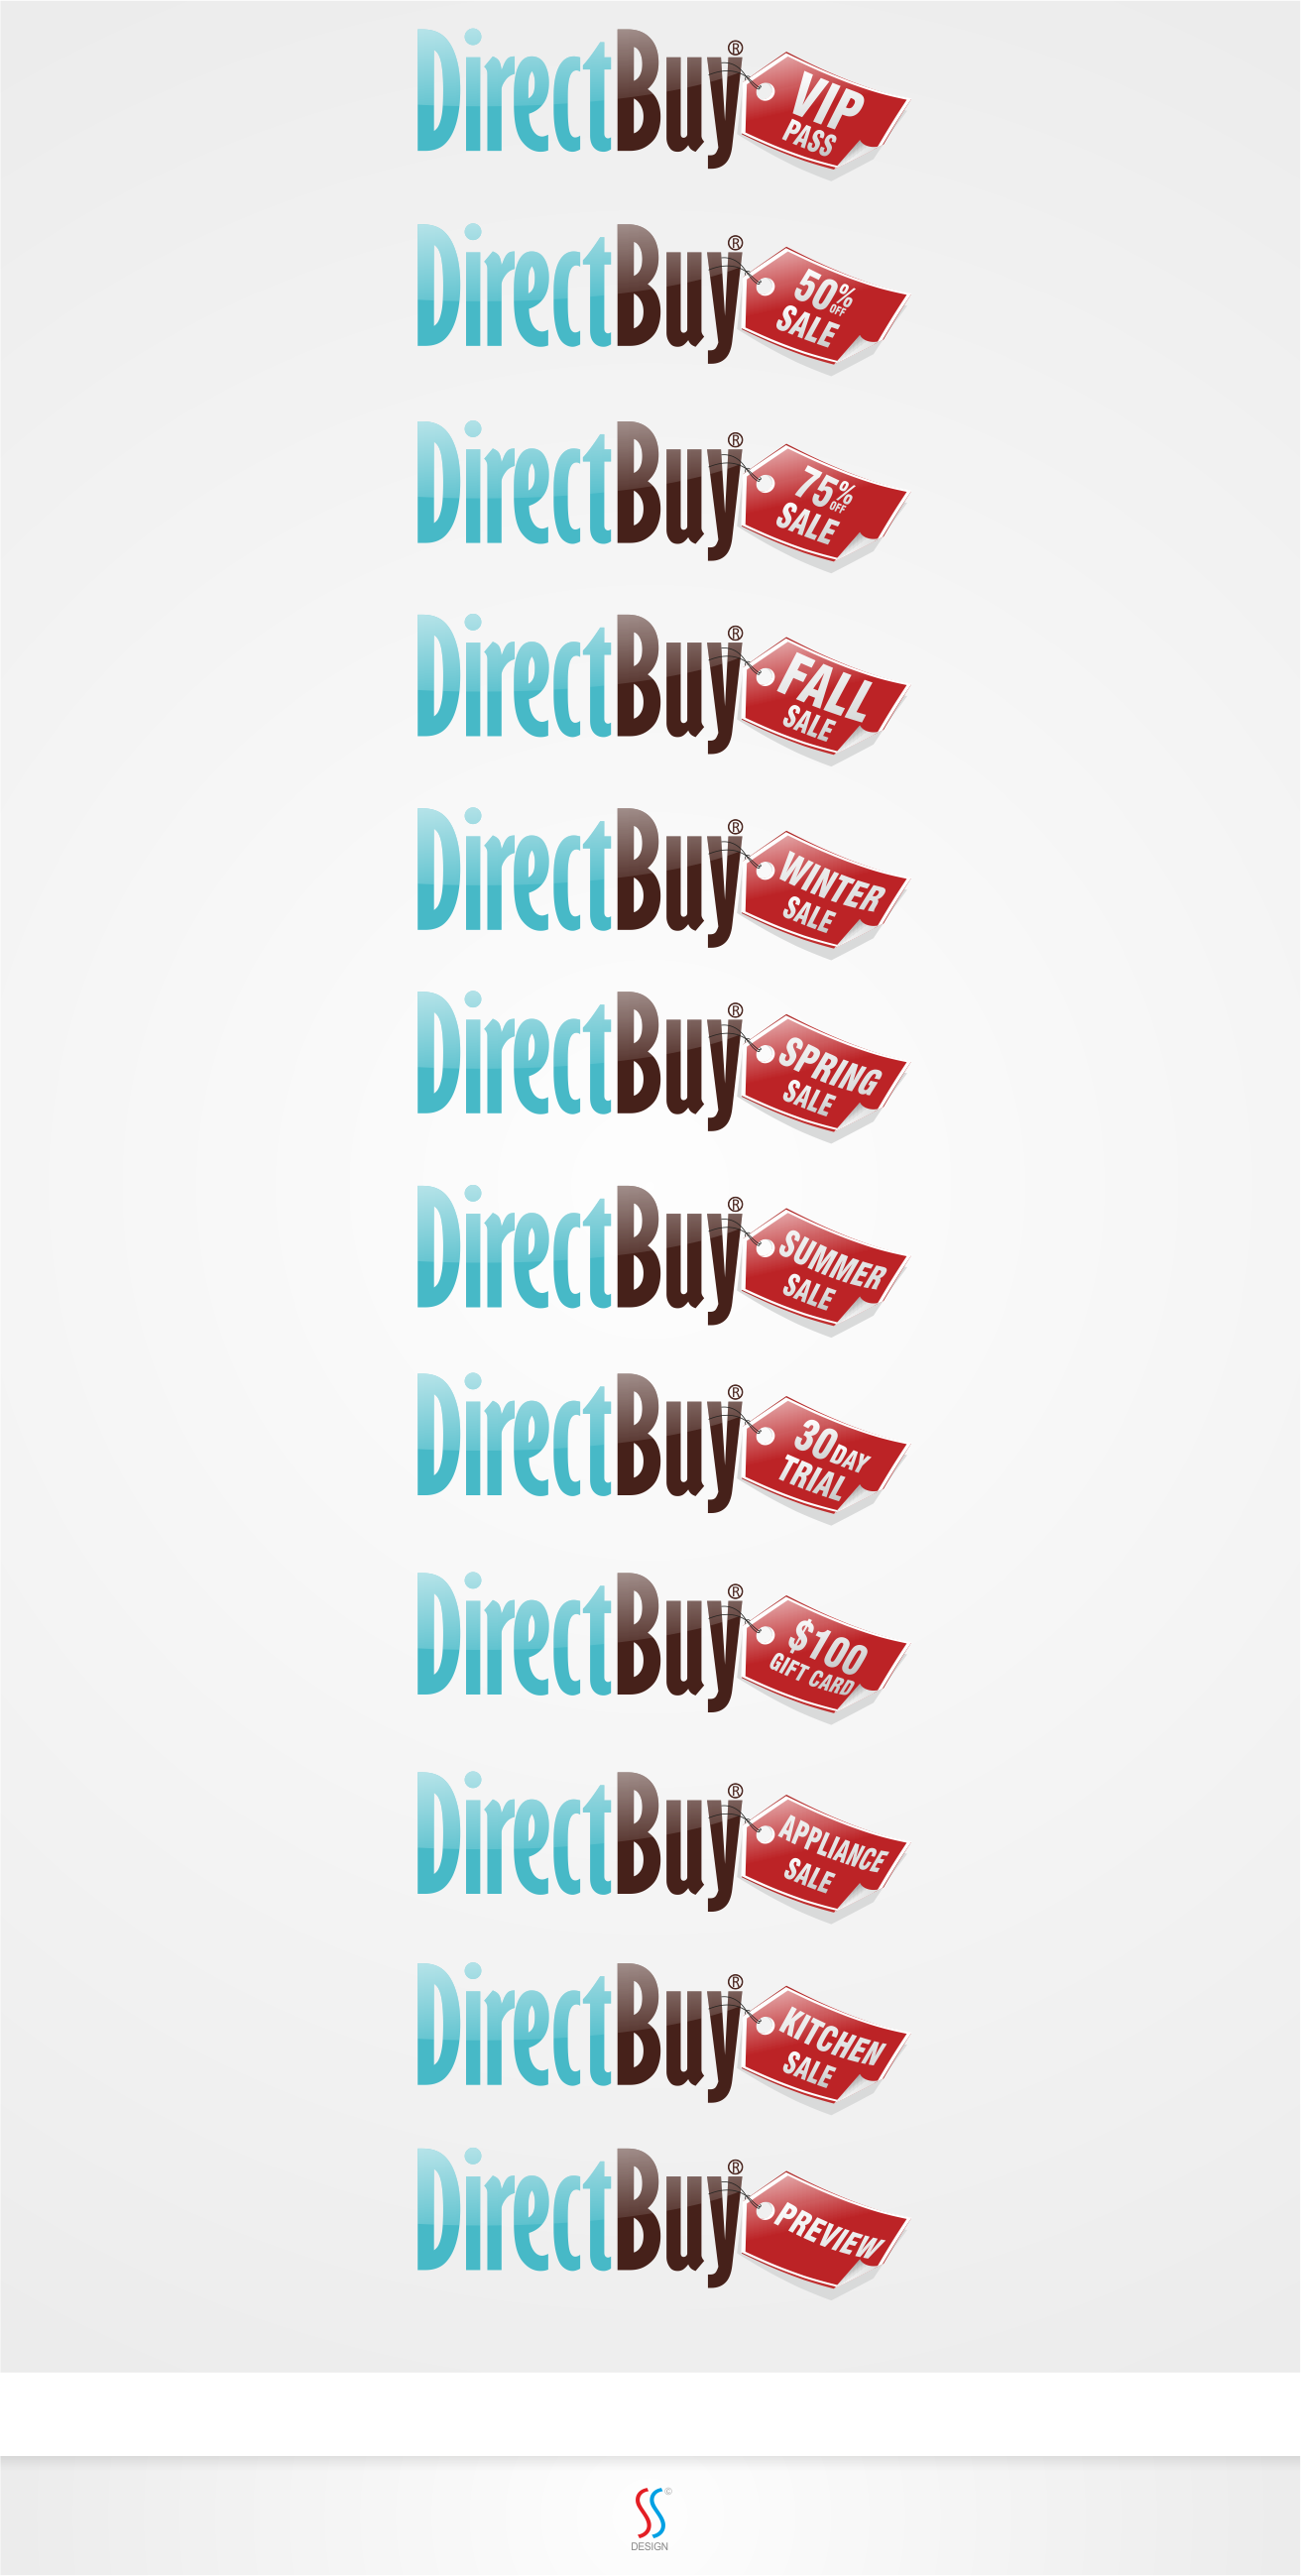 Create the new logo for DirectBuy Offer